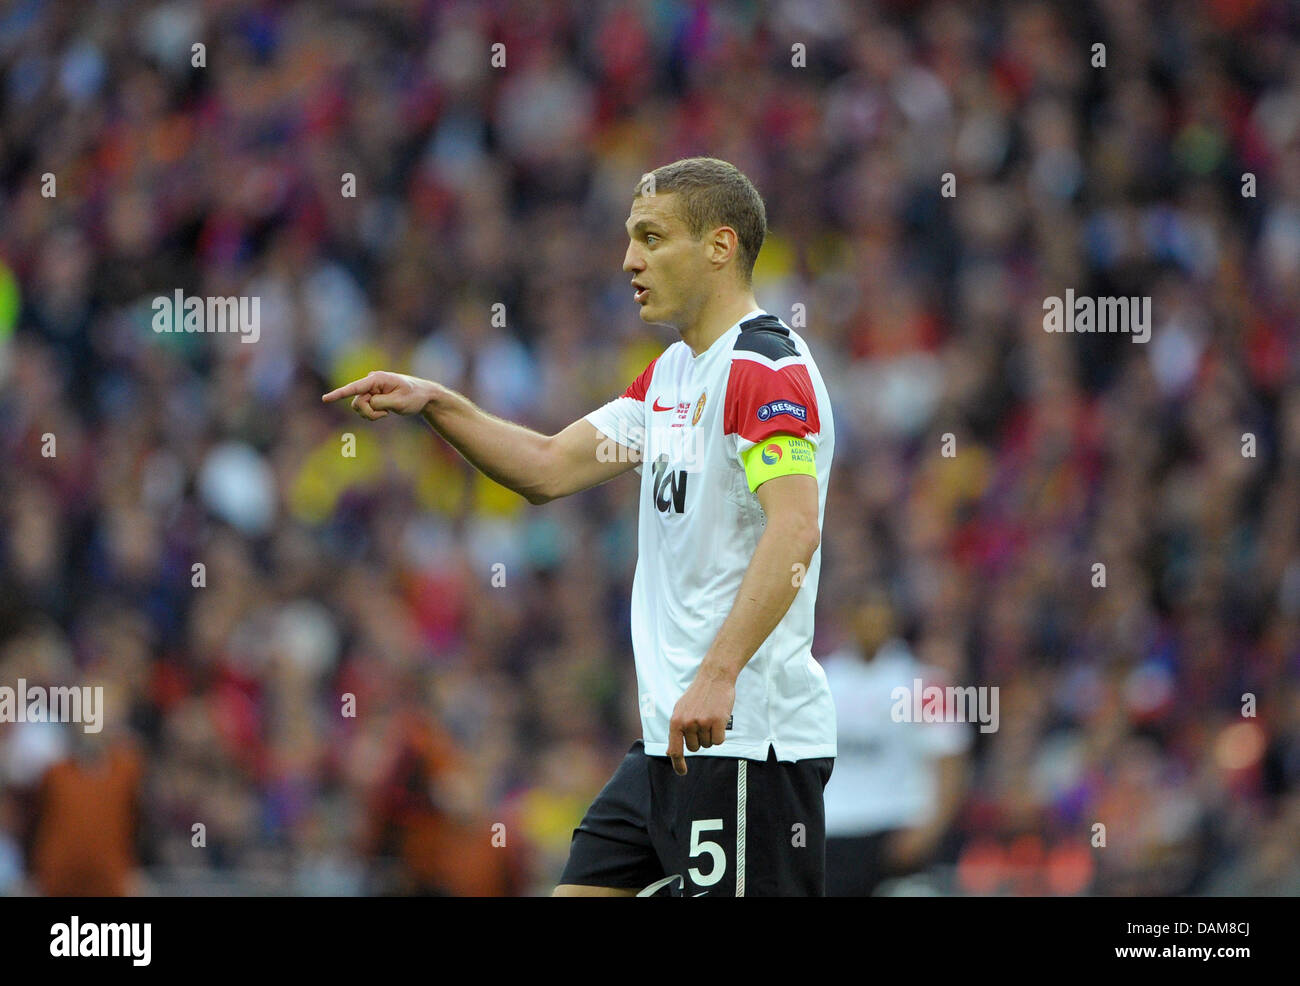 Manchester s Nemanja Vidic gestures during the UEFA Champions